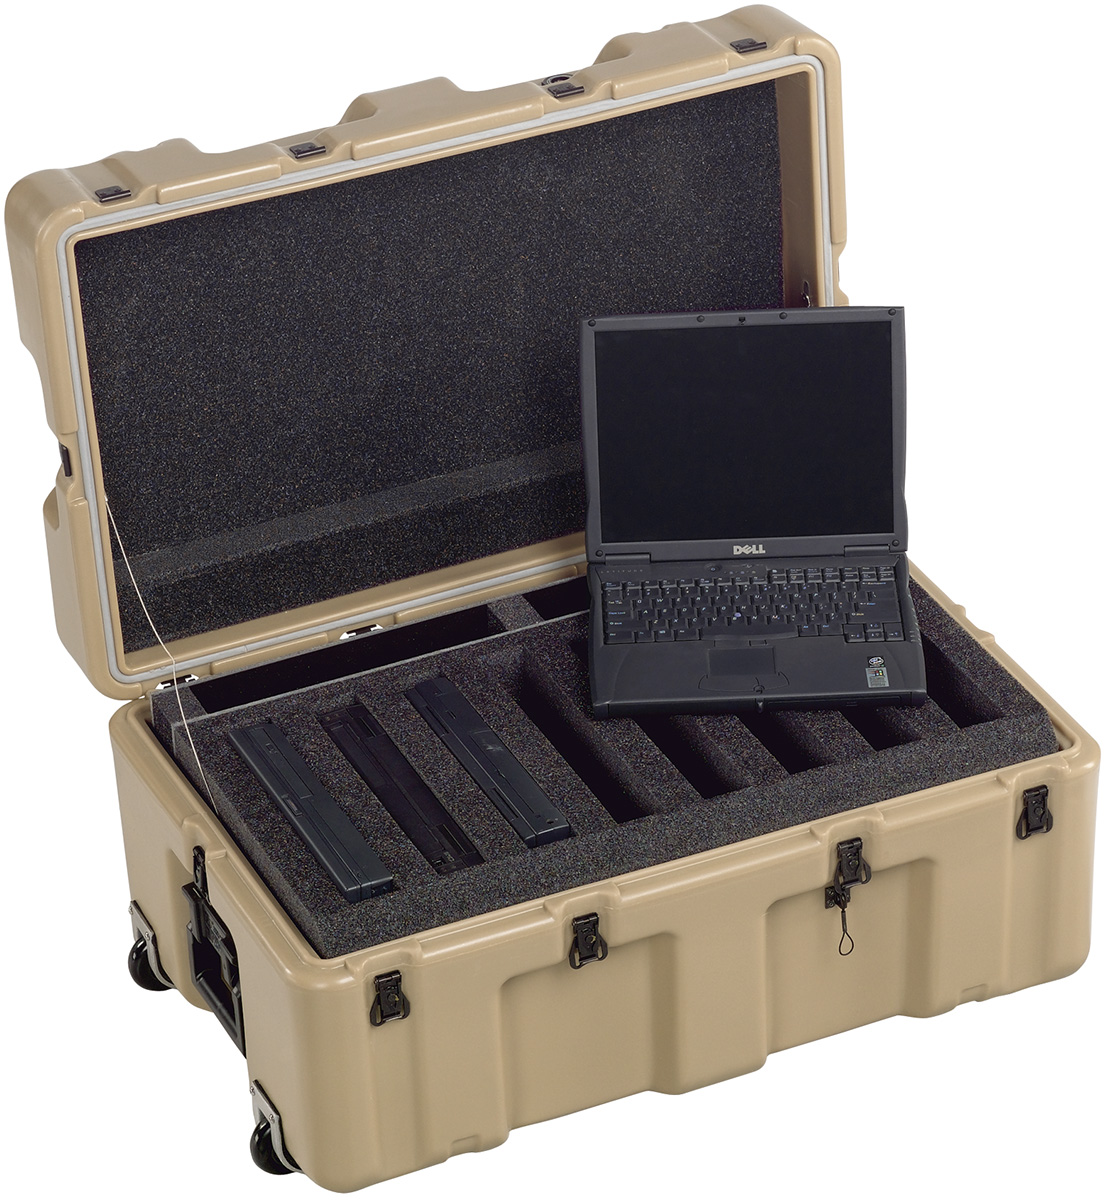 pelican peli products 472 8 LAPTOP military army laptop plastic case